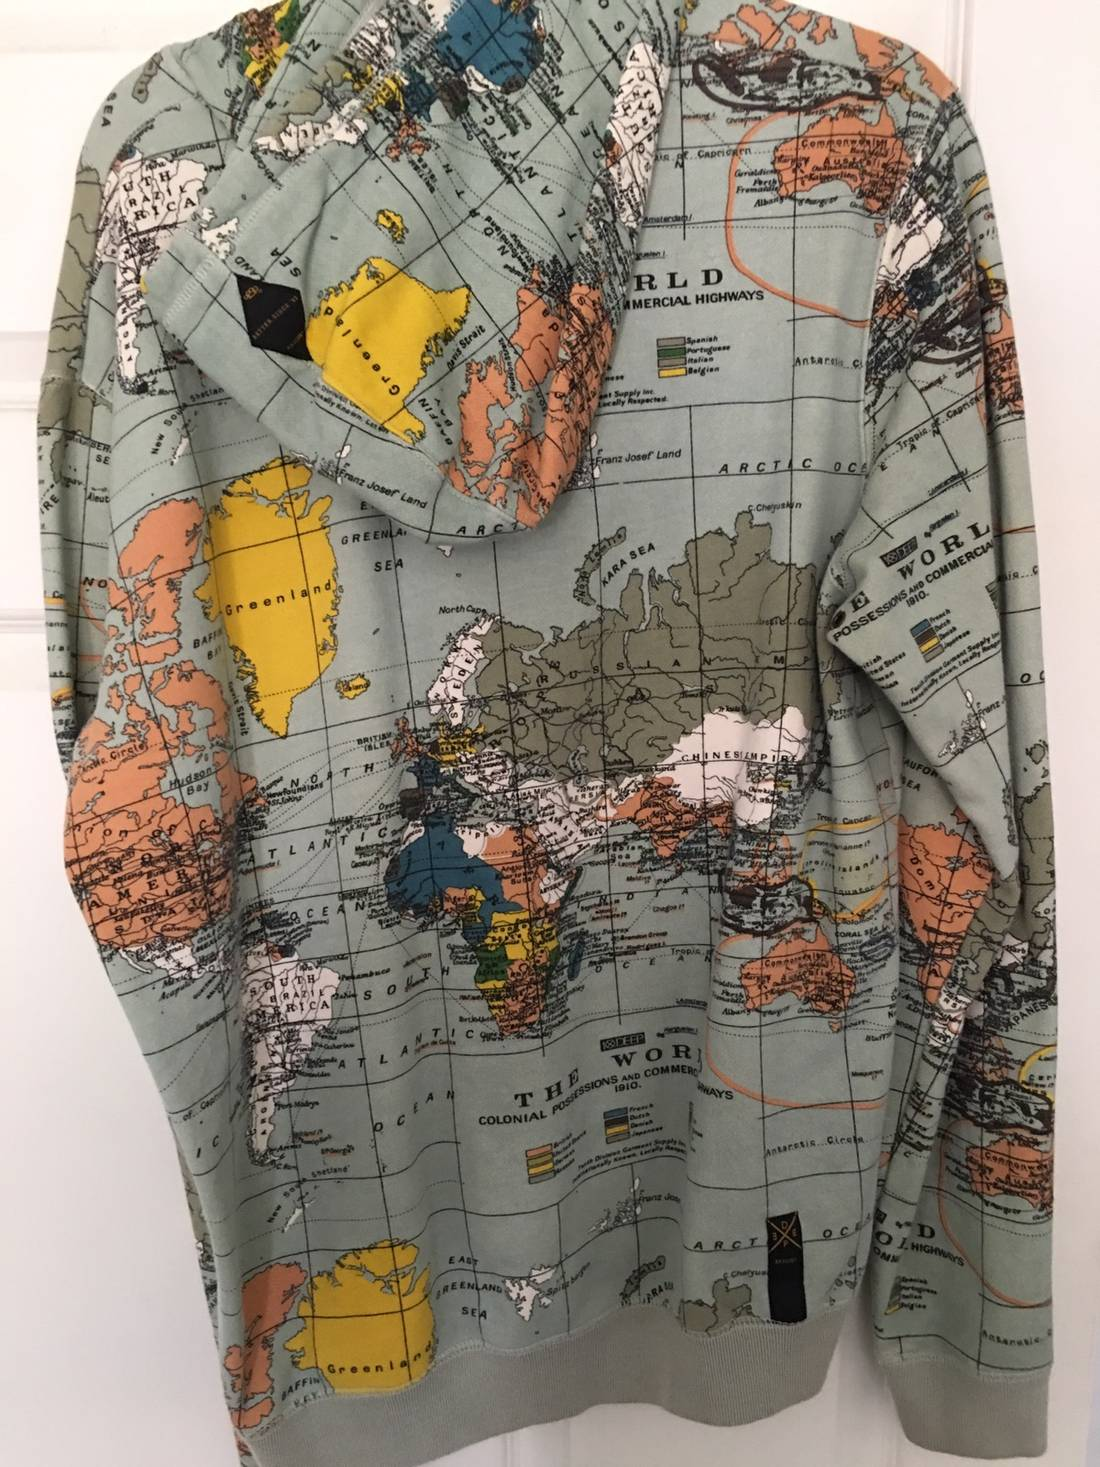 10 deep world map hoodie size l sweatshirts hoodies for sale 10 deep world map hoodie size us l eu 52 54 3 gumiabroncs Images